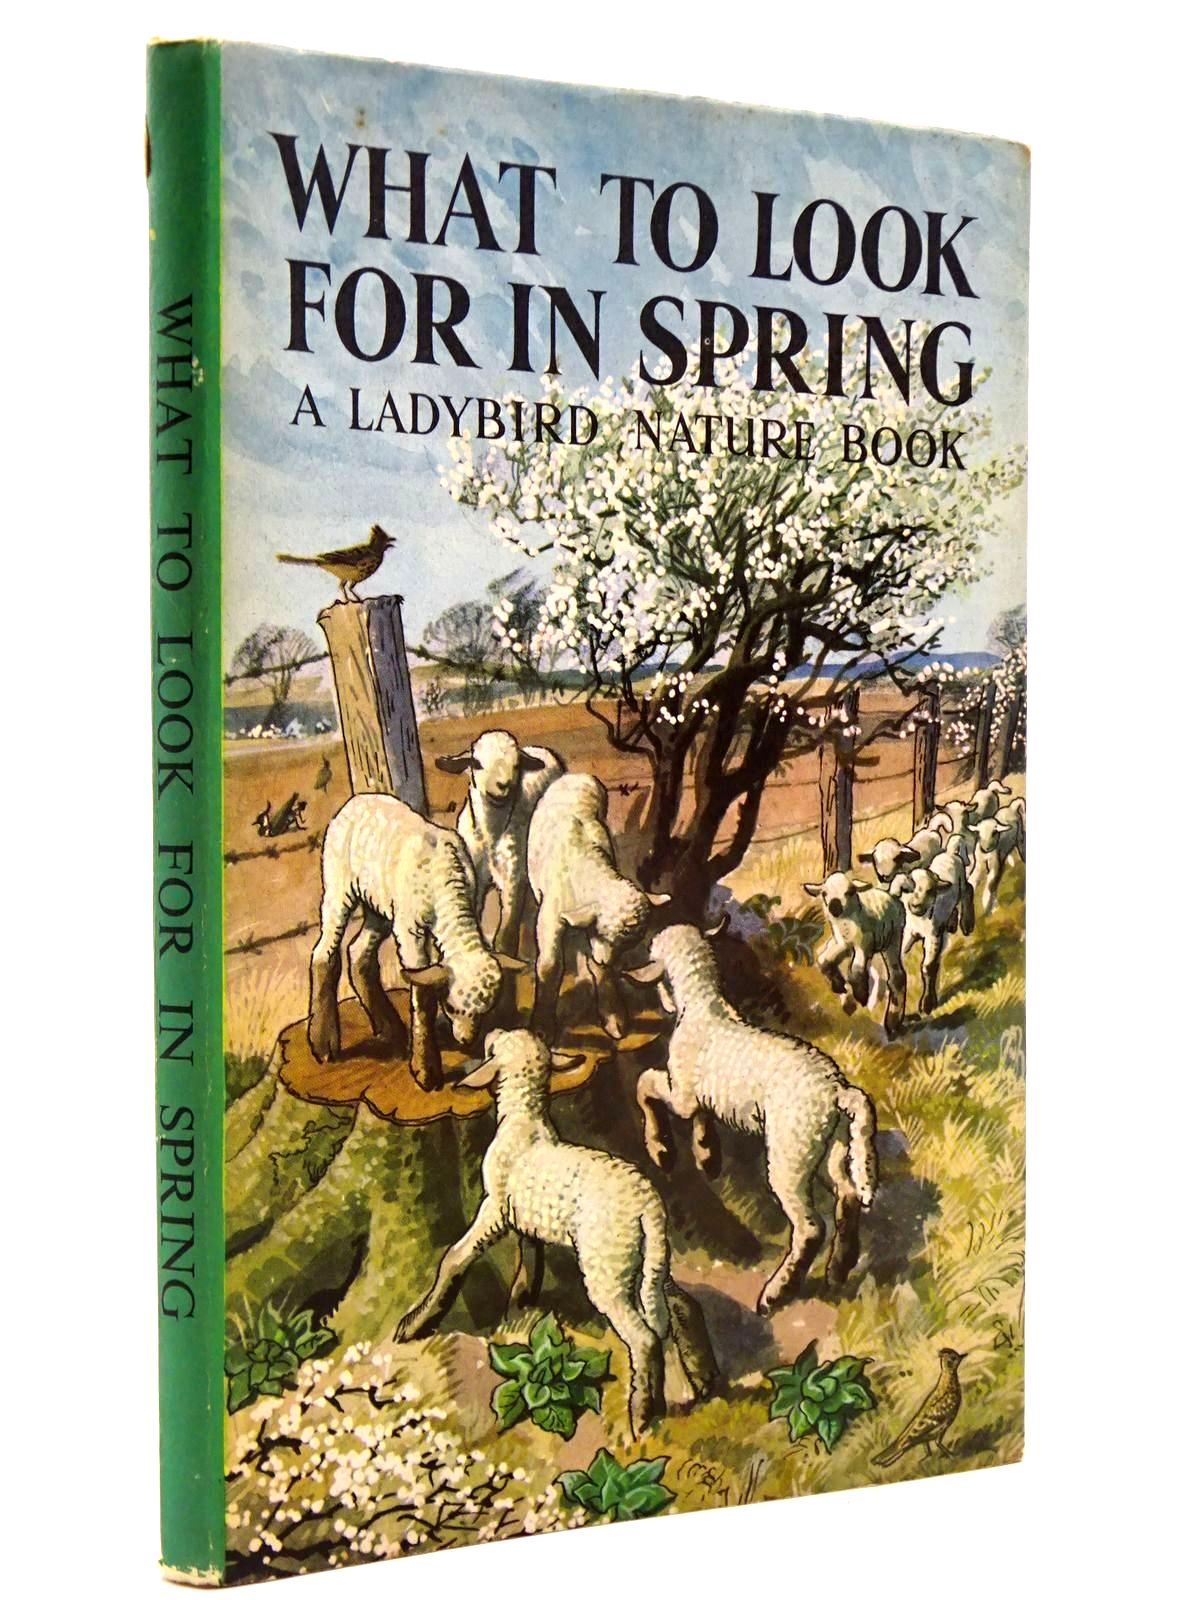 Photo of WHAT TO LOOK FOR IN SPRING written by Watson, E.L. Grant illustrated by Tunnicliffe, C.F. published by Wills & Hepworth Ltd. (STOCK CODE: 2130392)  for sale by Stella & Rose's Books